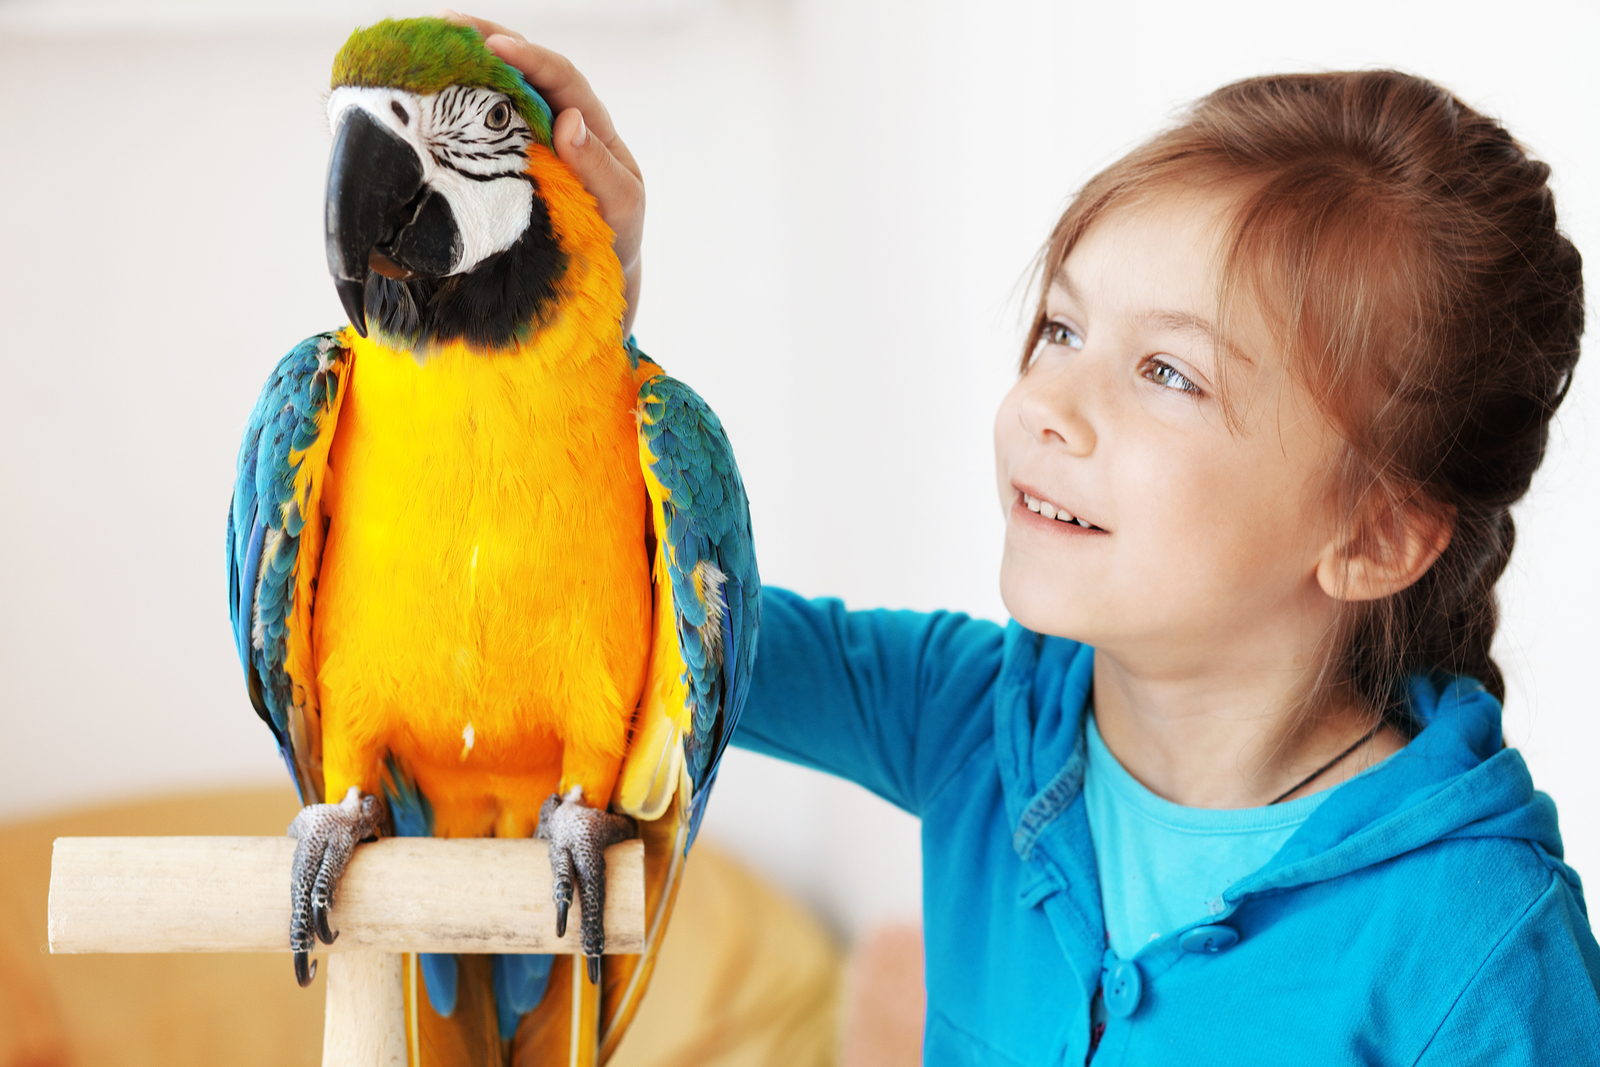 young girl sitting next to a bird